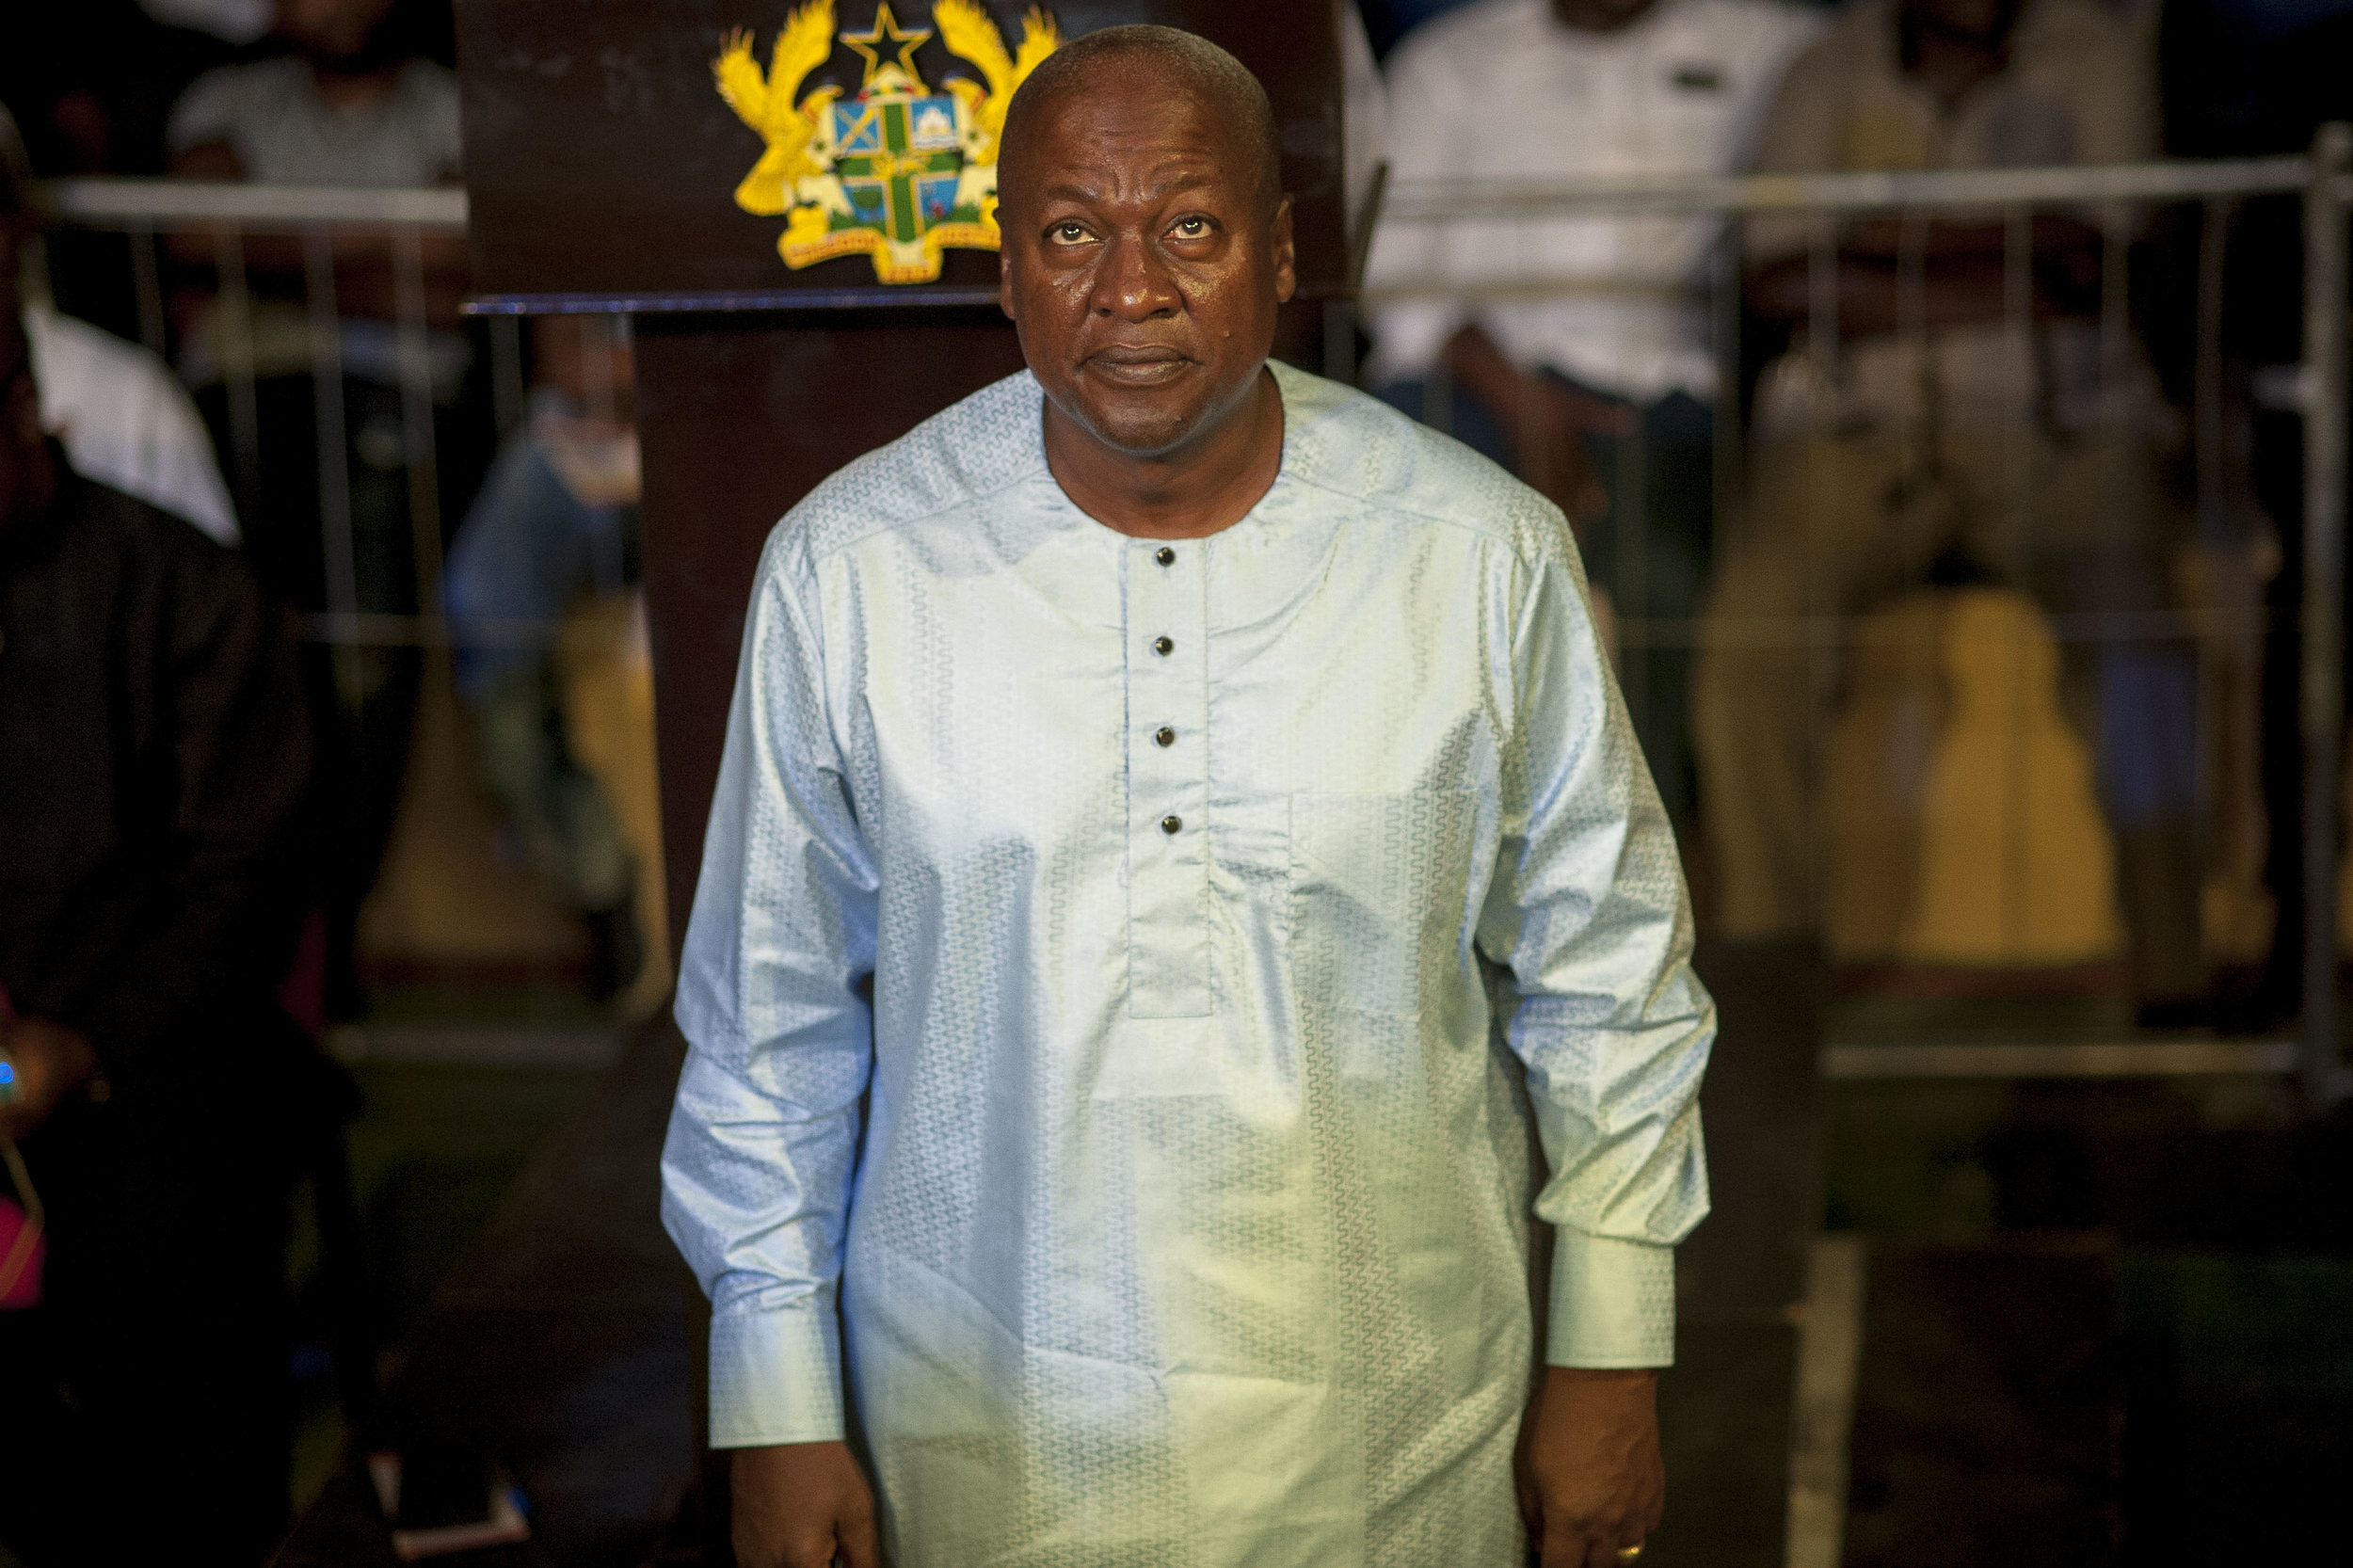 John Dramani Mahama, president of Ghana and National Democratic Congress main candidate for the next general election on 7th December, during the opening of the new Bukom Boxing Arena in Accra